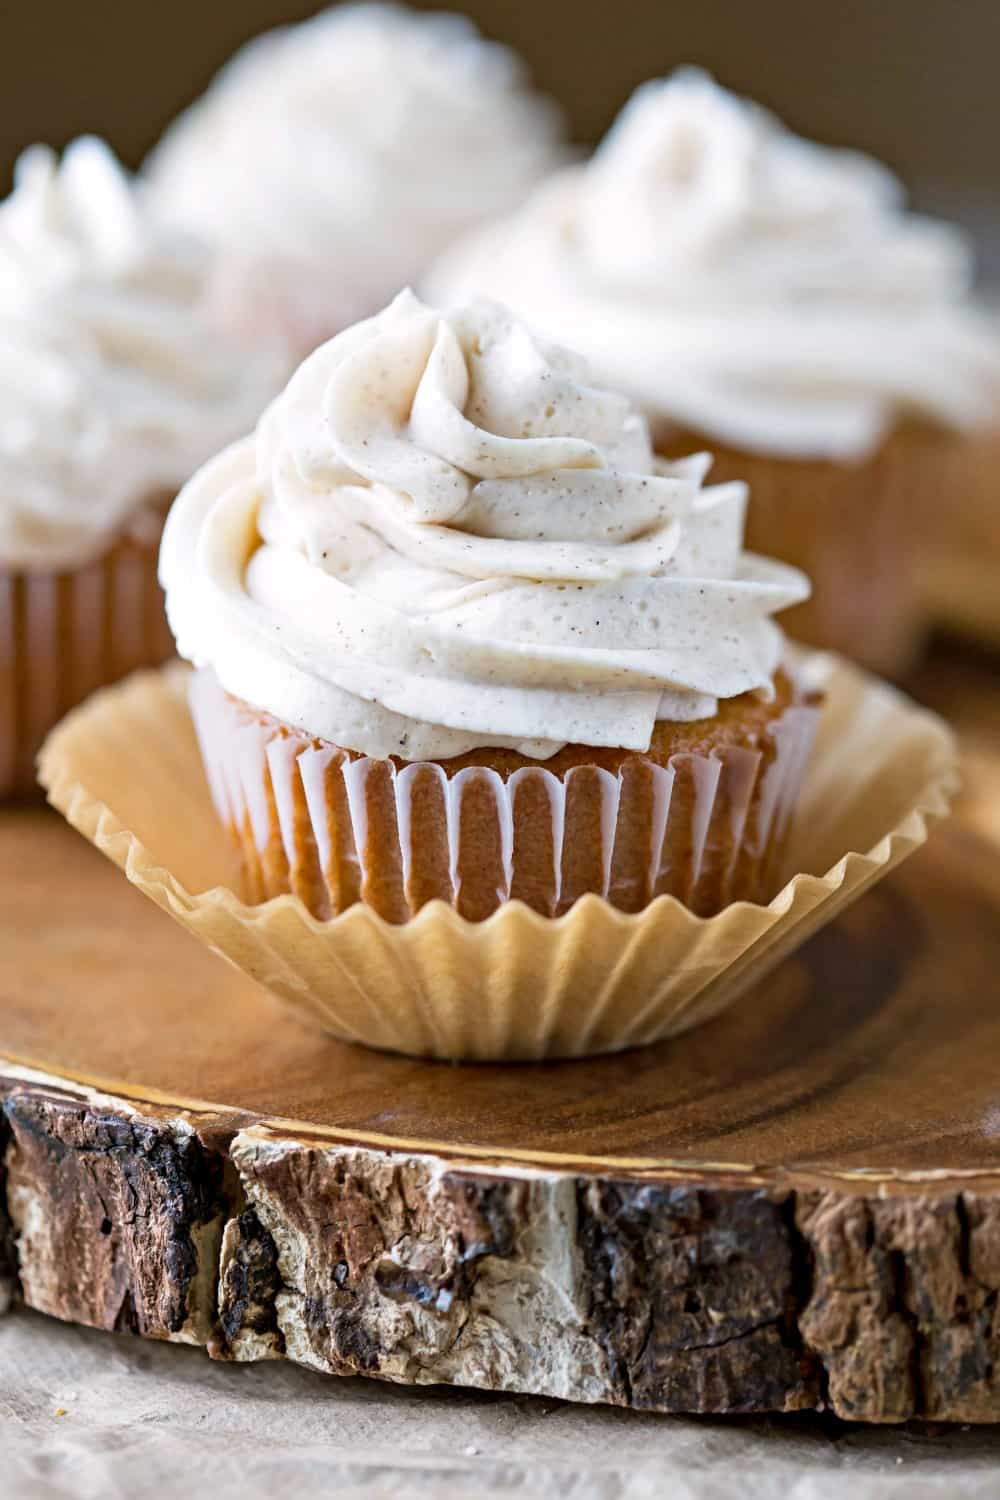 Whipped Cinnamon Buttercream Frosting